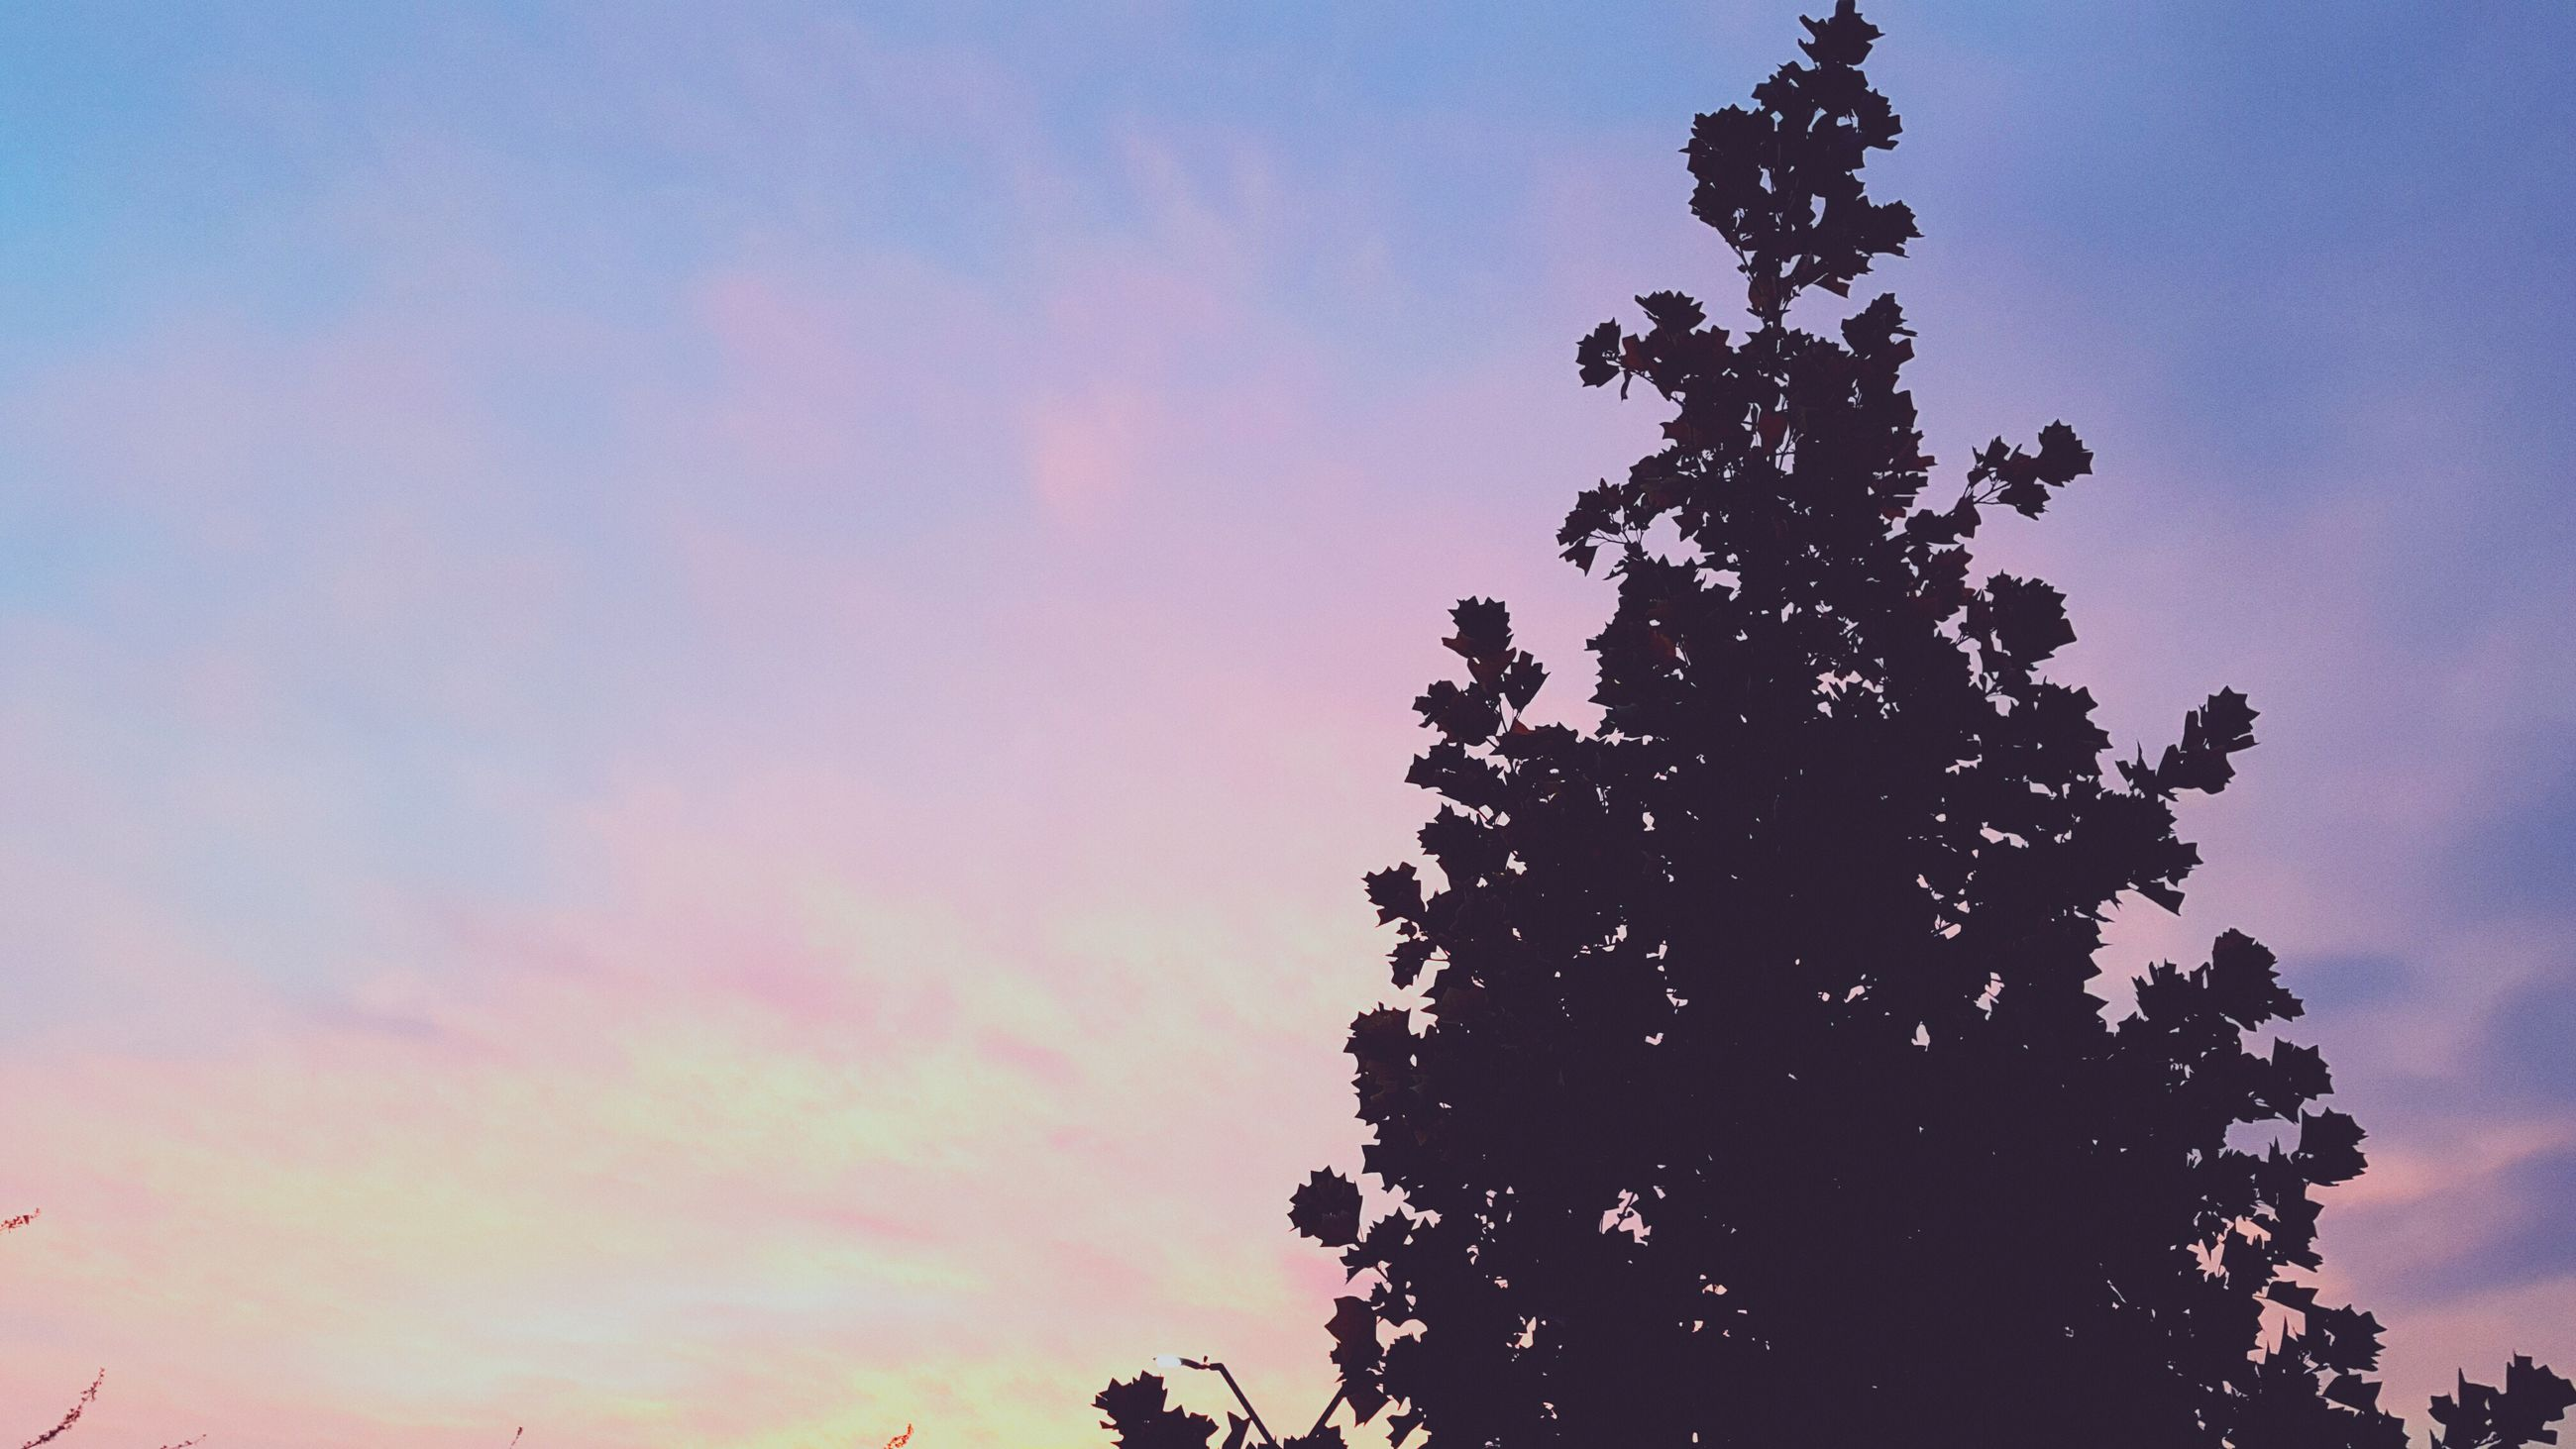 sunset, sky, nature, tree, beauty in nature, silhouette, no people, outdoors, astronomy, day